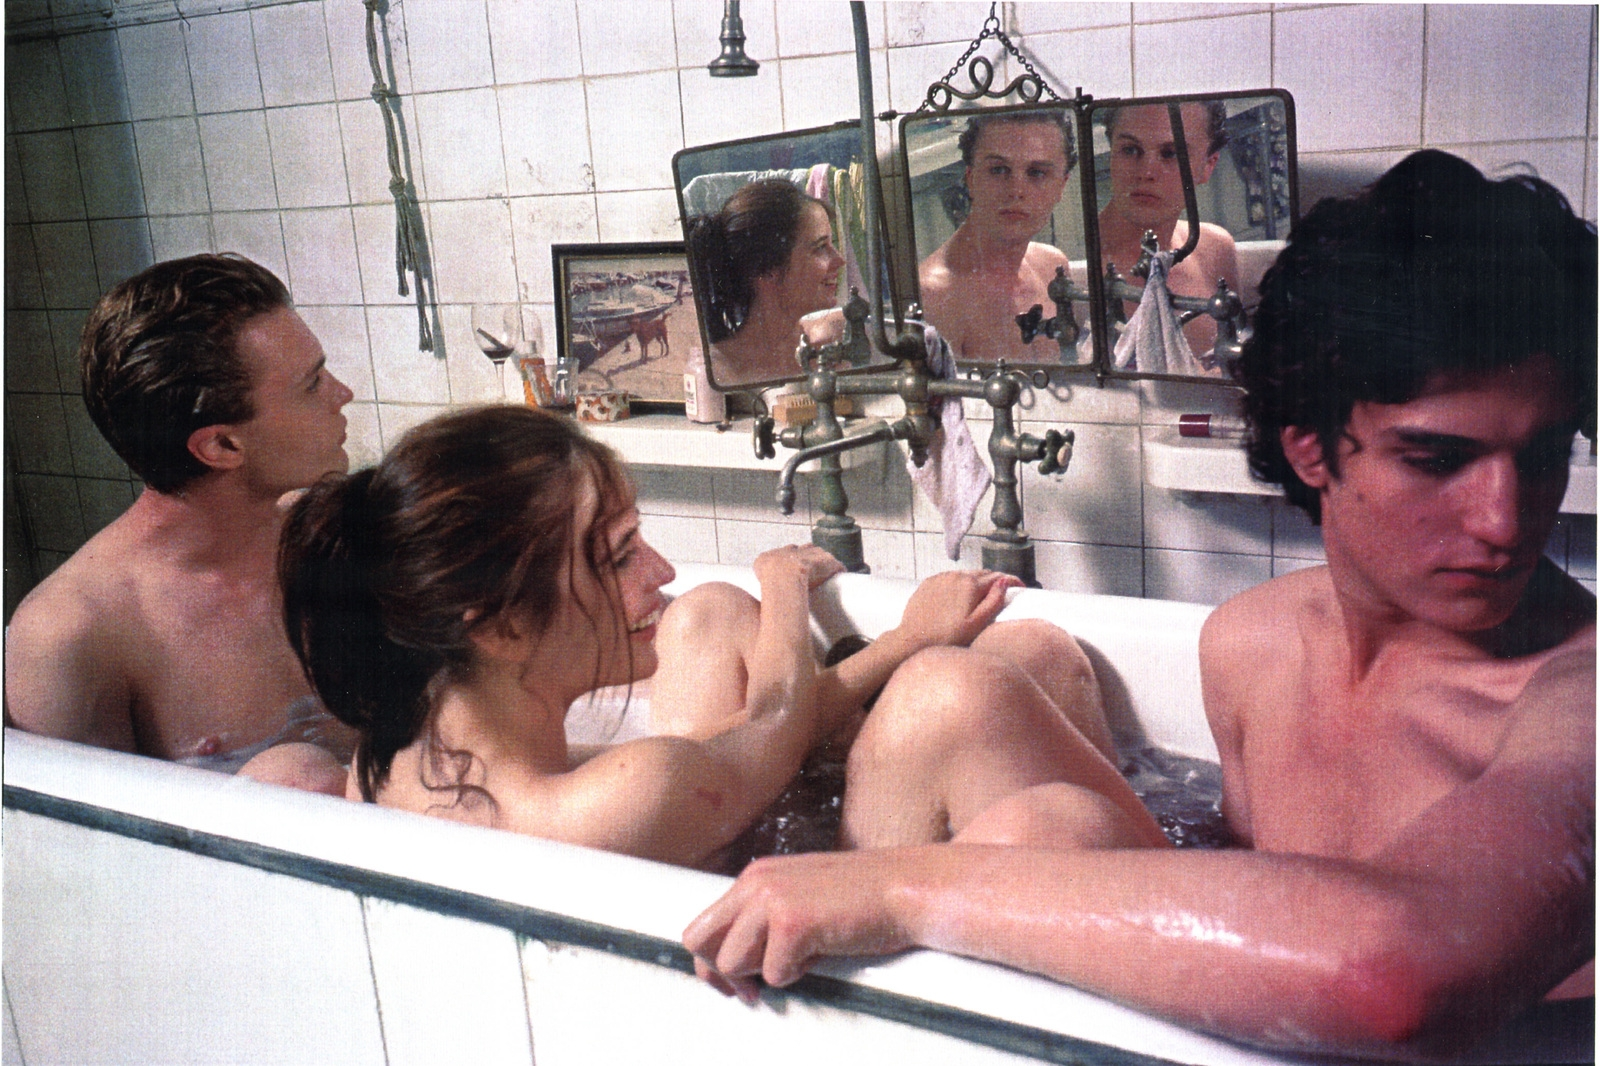 The Dreamers. 2003 image